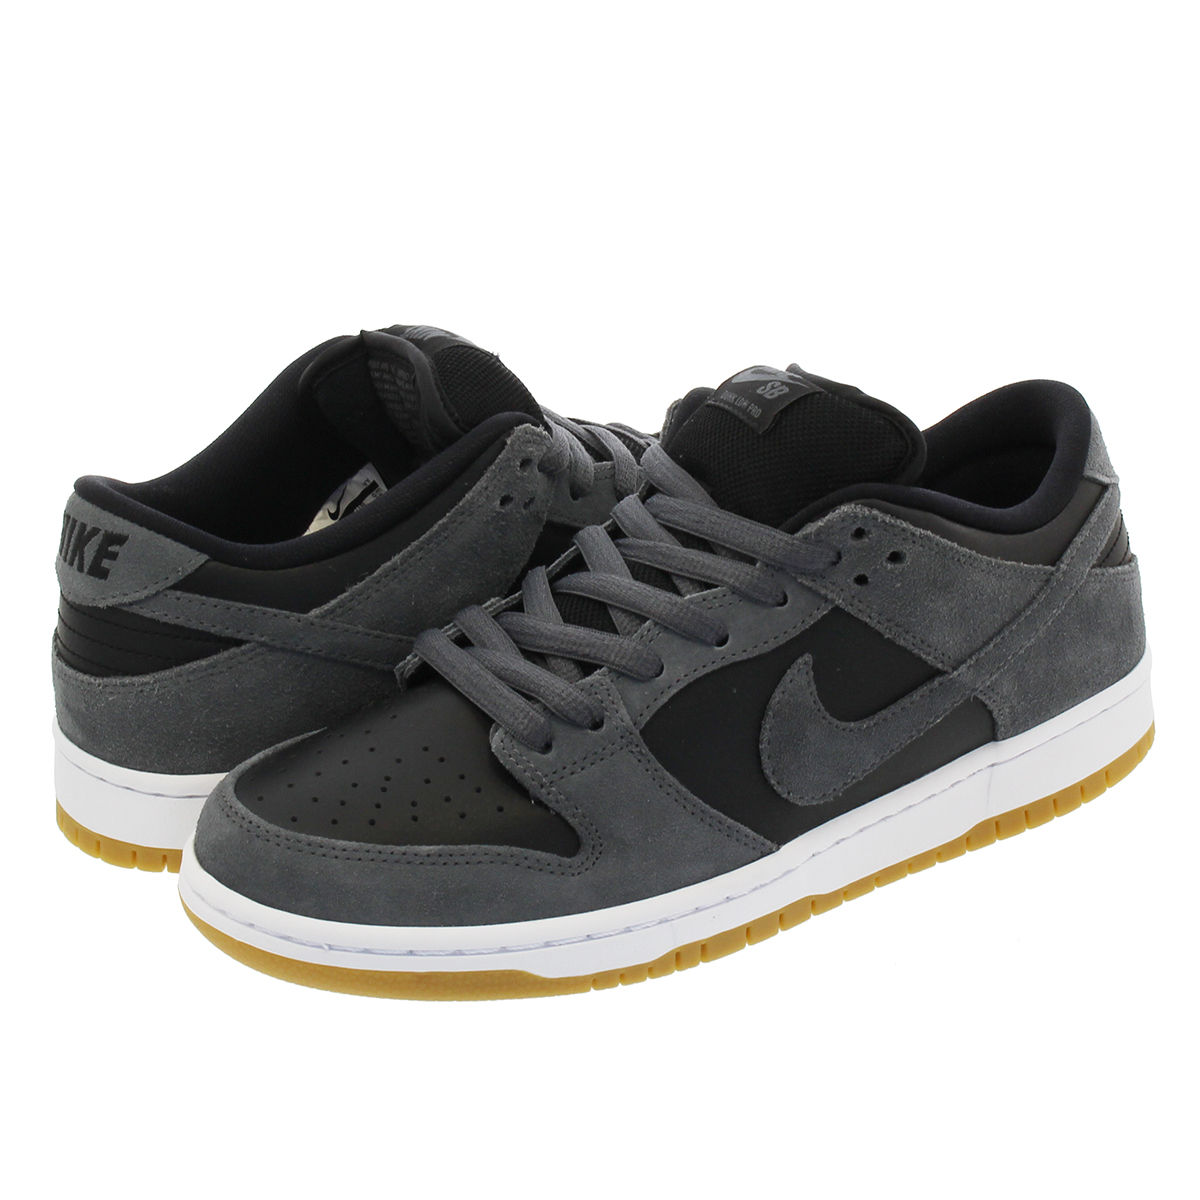 buy online e7517 eff56 NIKE SB DUNK LOW TRD Nike SB dunk low TRD DARK GREY/BLACK/WHITE/GUM